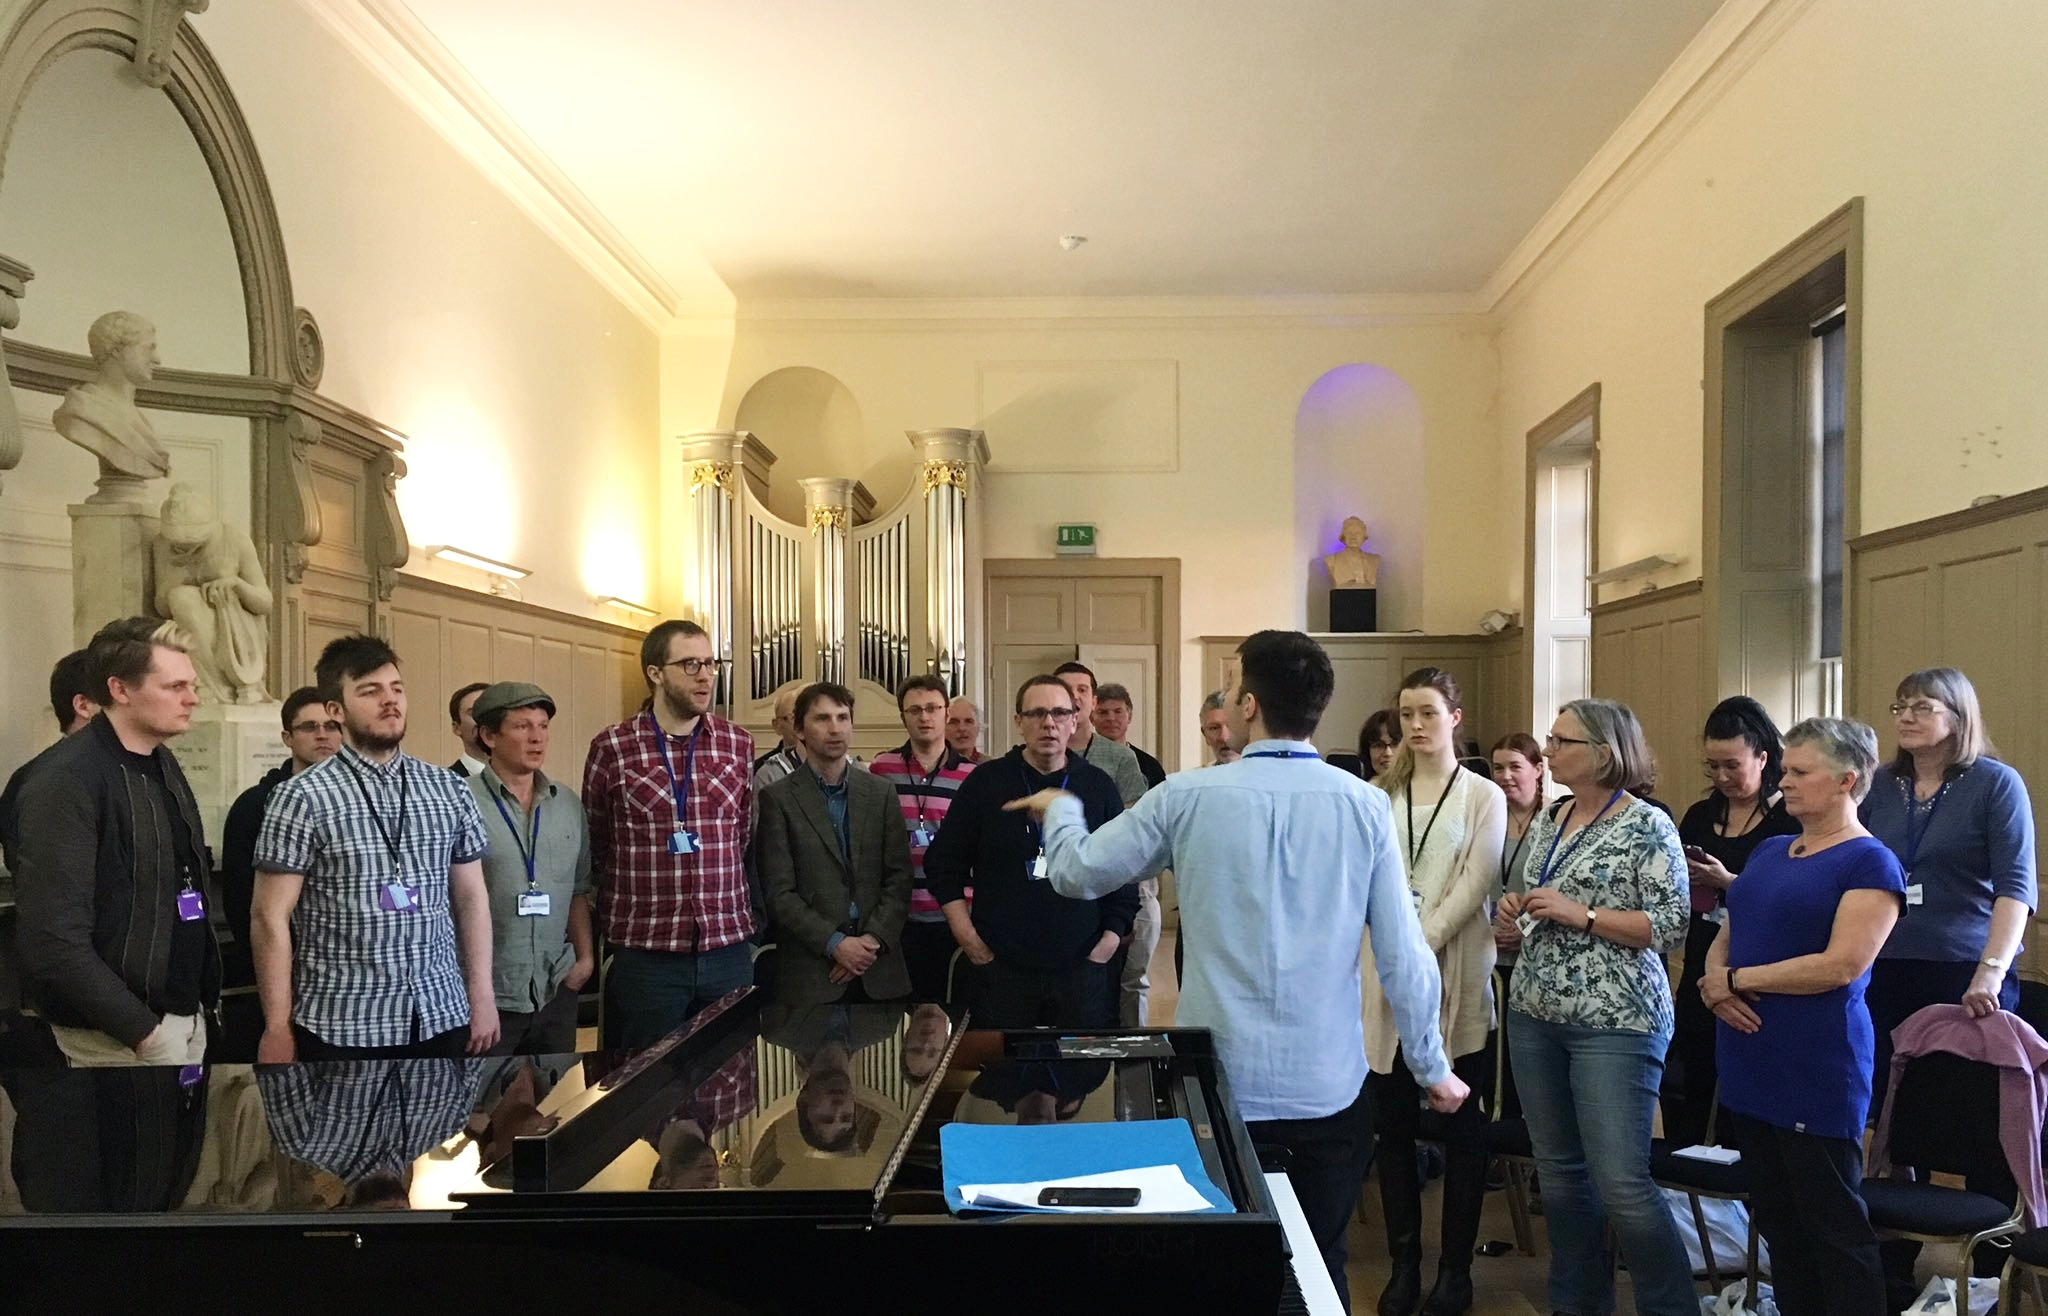 Working with a choir at Trinity Laban